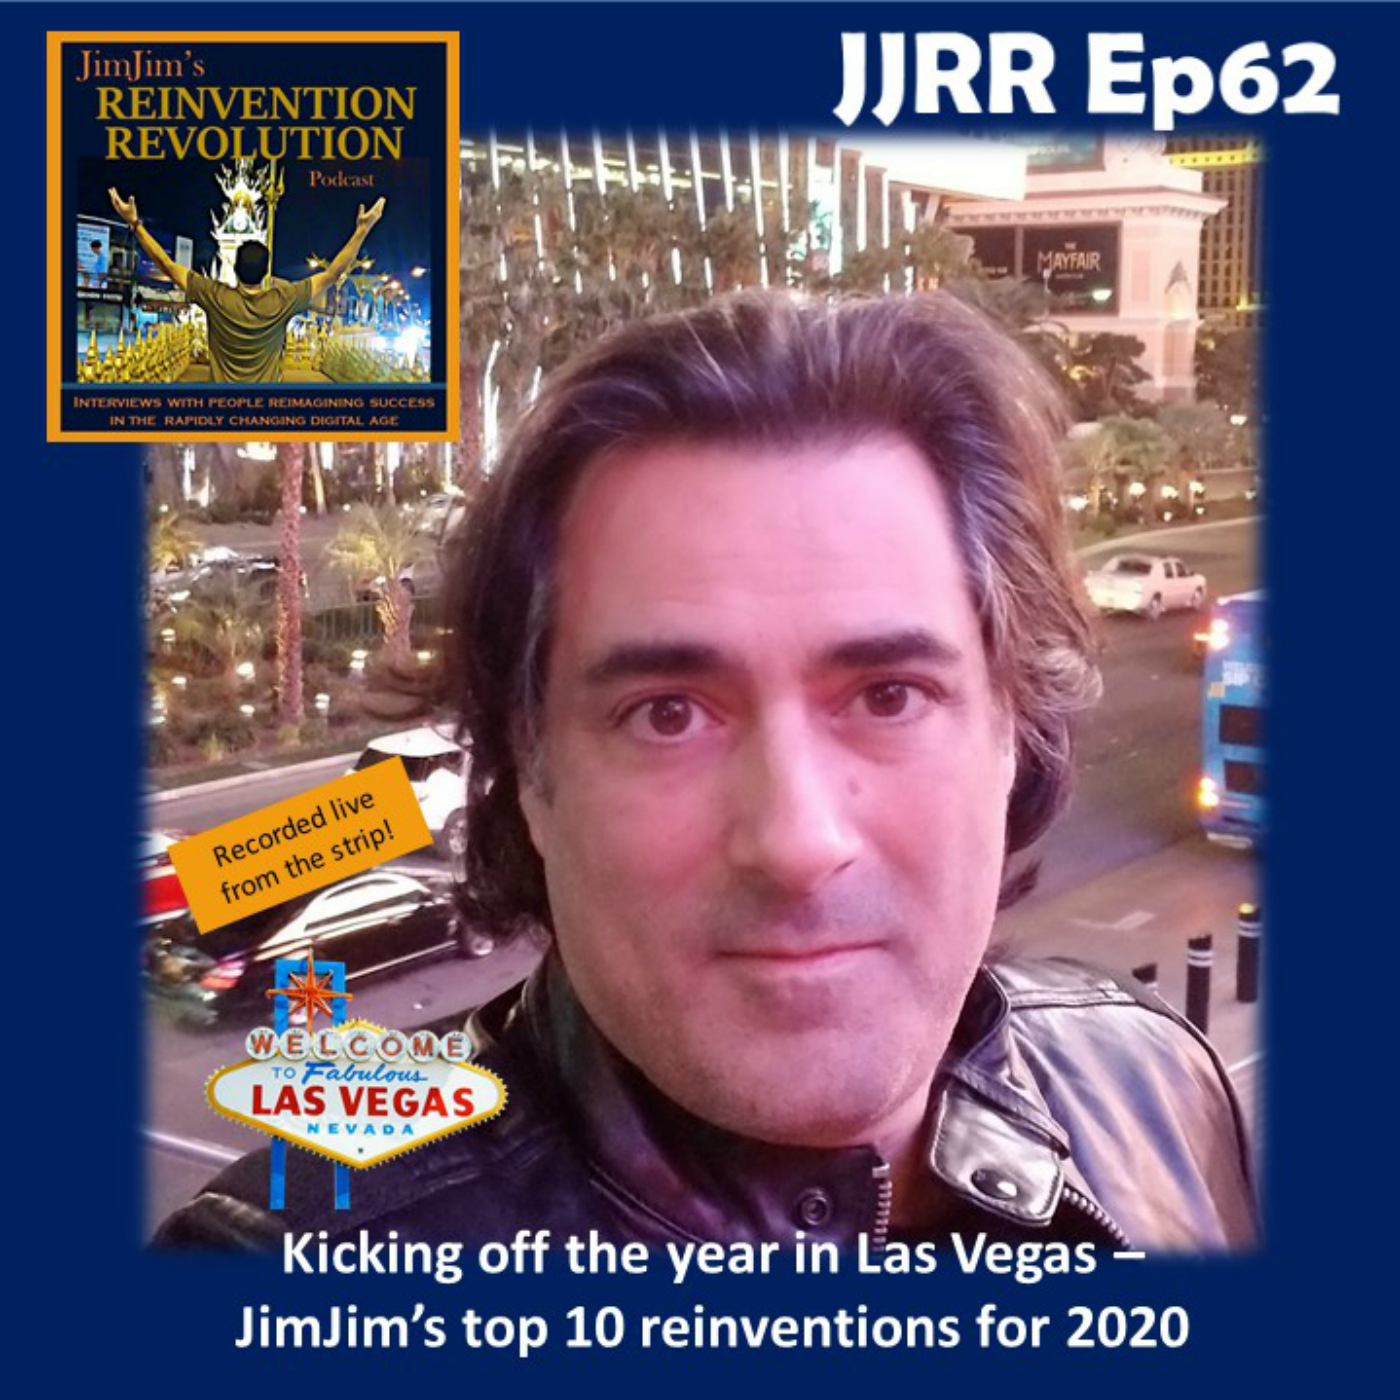 JJRR 62 Kicking the year off in Las Vegas – JimJim's top 10 reinventions for 2020